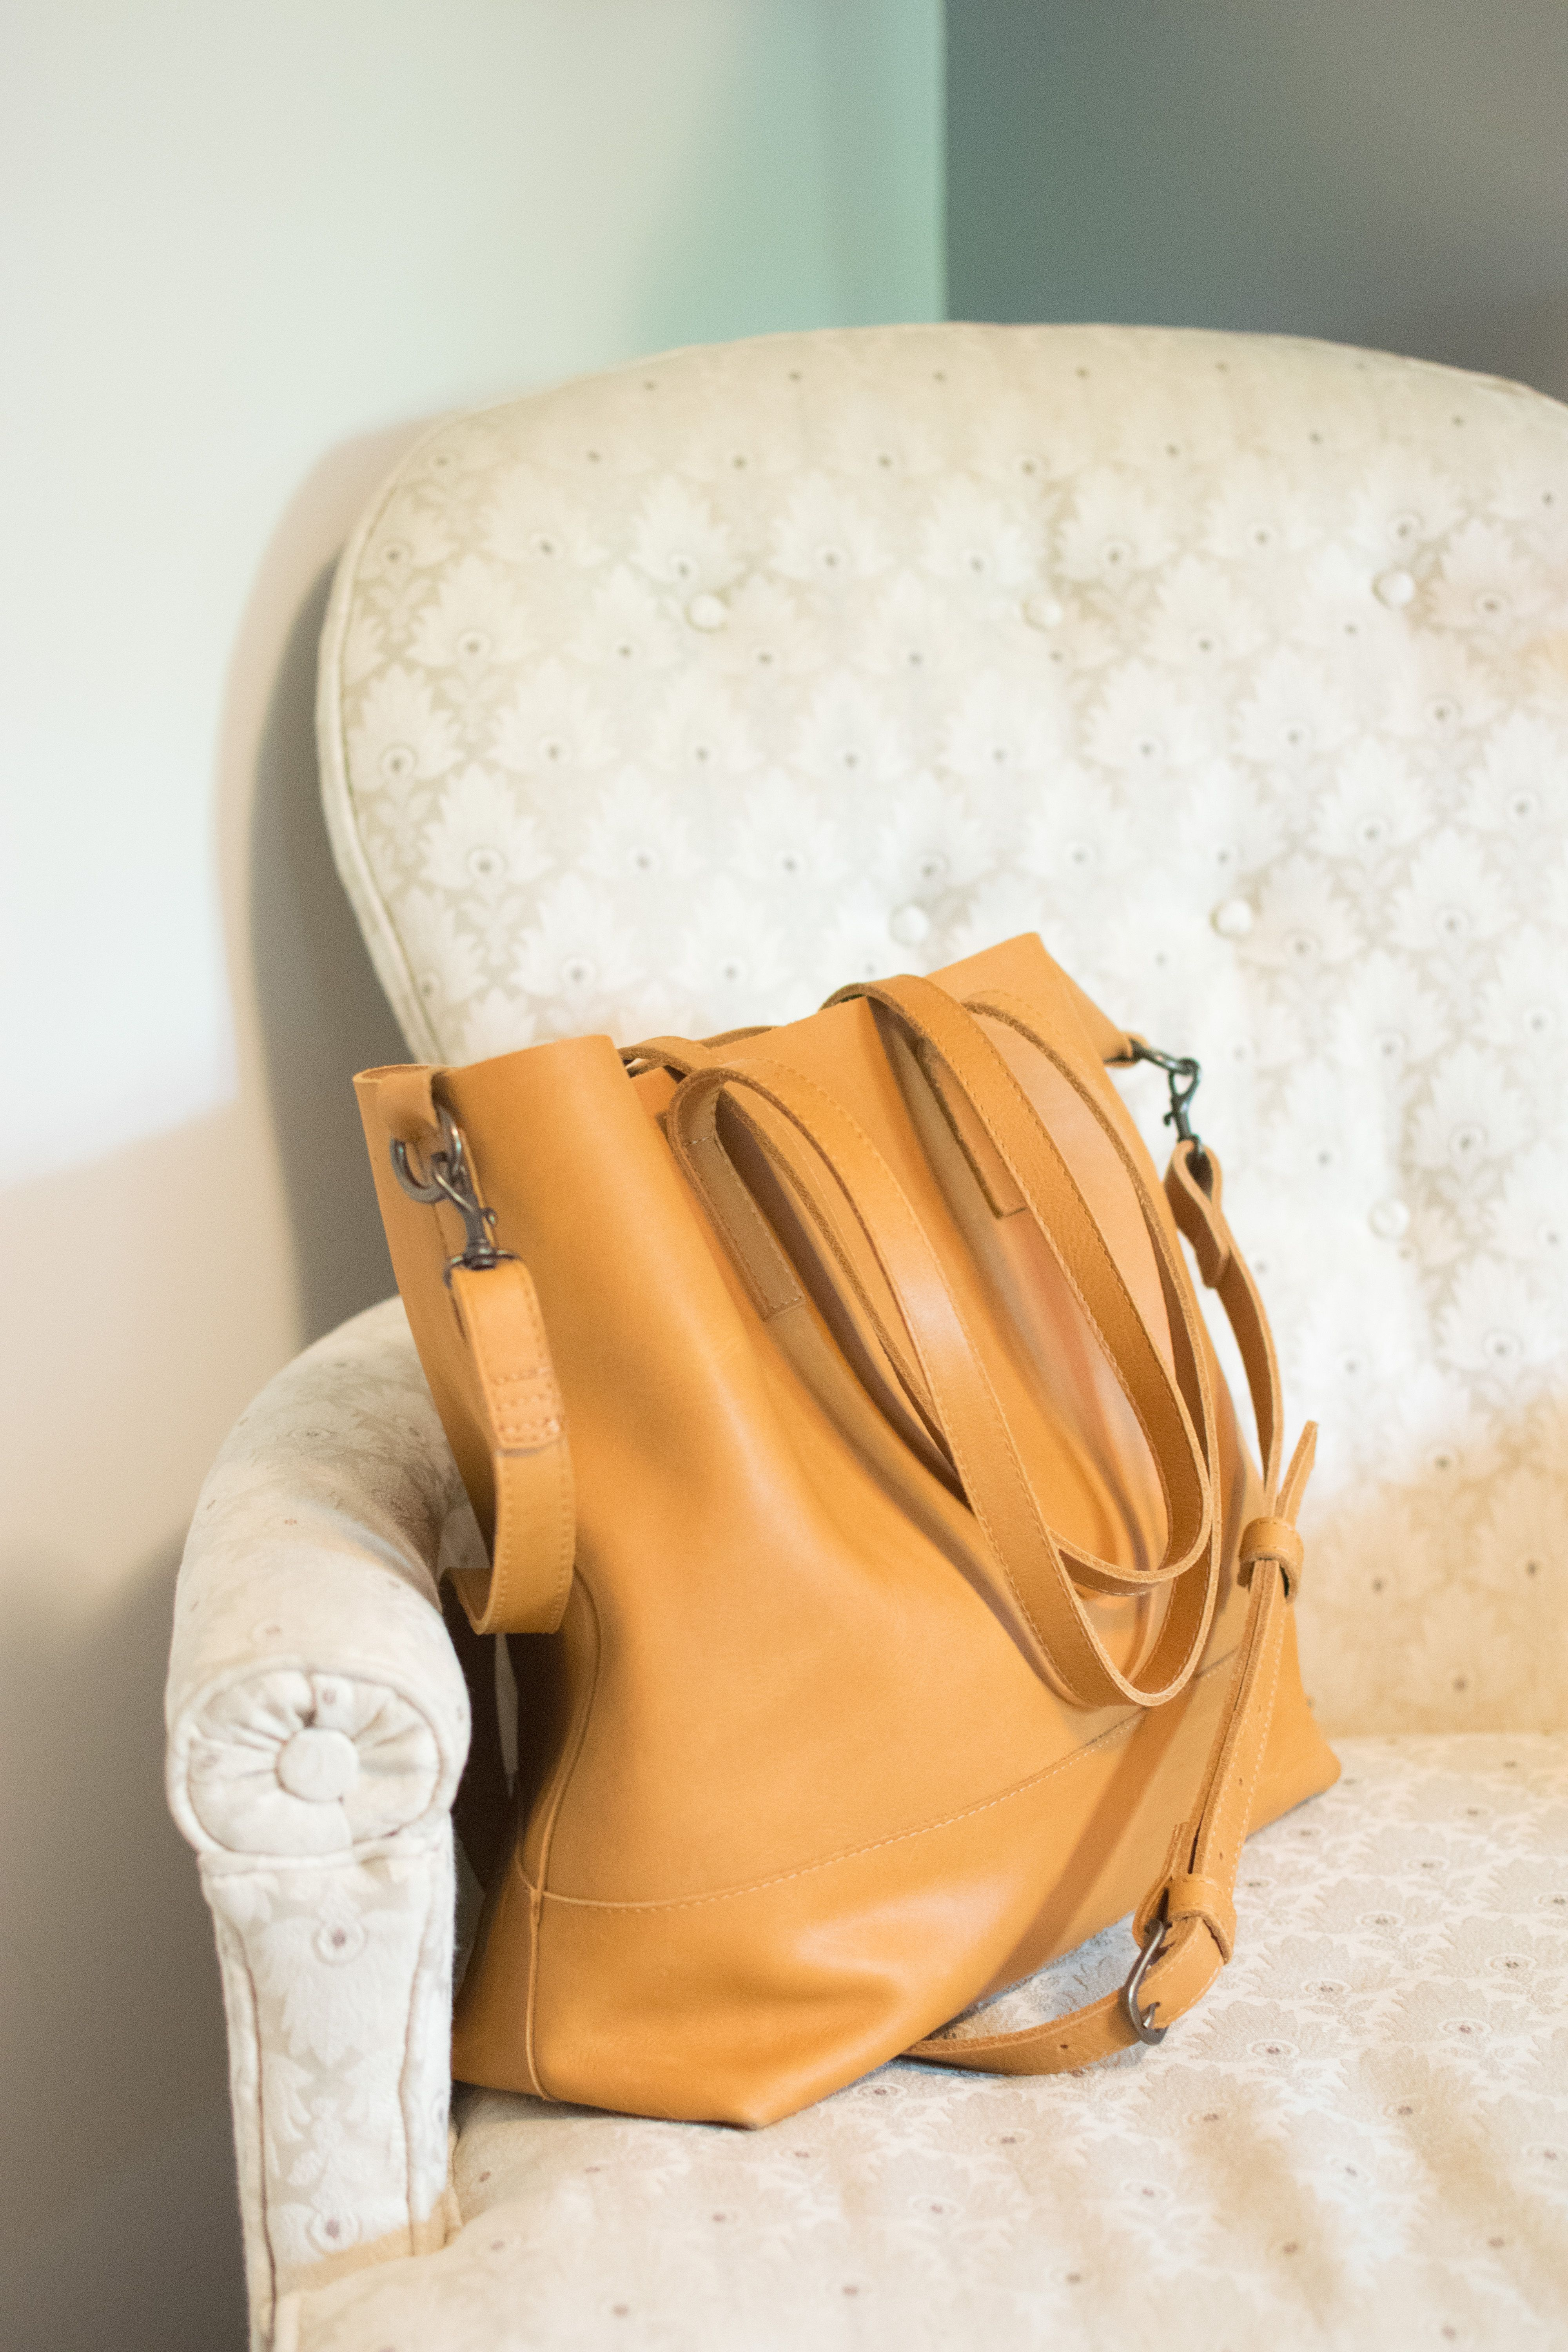 94612aa084d7 Abera Crossbody Tote in Cognac by FashionABLE is the perfect leather fair  trade bag for any occasion. The multi-function tote showcases the  purchaser's ...